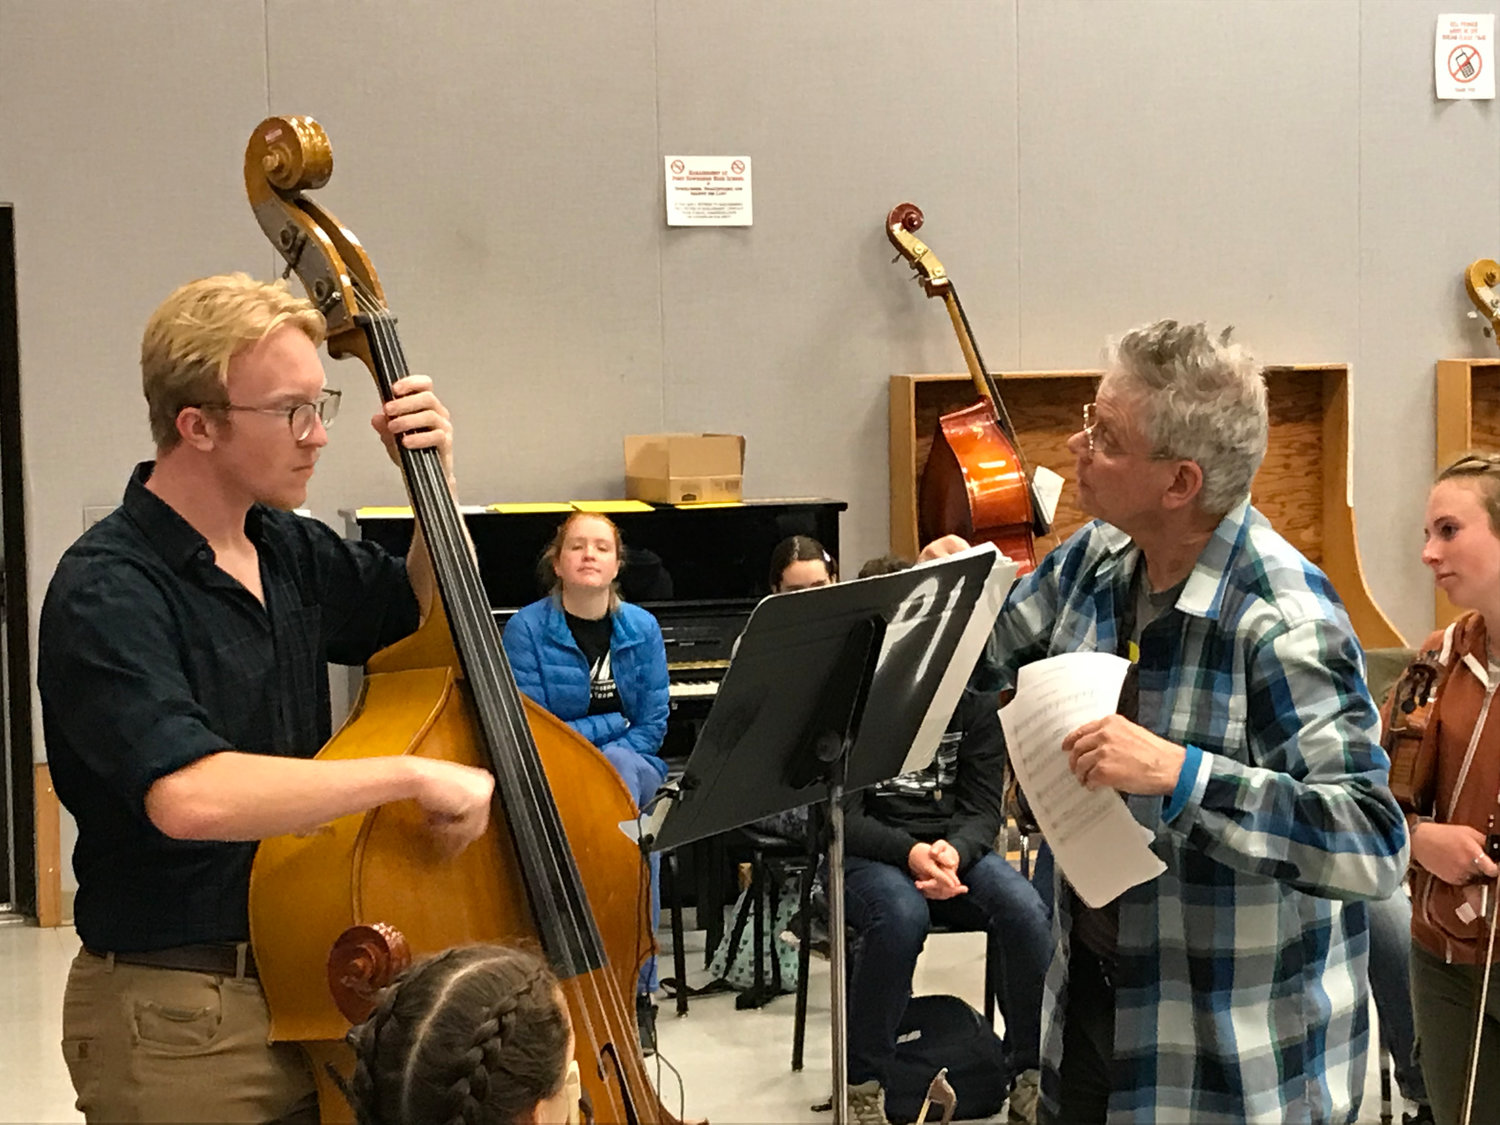 Orion Pendley, left, receives instruction from David Harrington of the Kronos Quartet at Port Townsend High School Nov. 5.